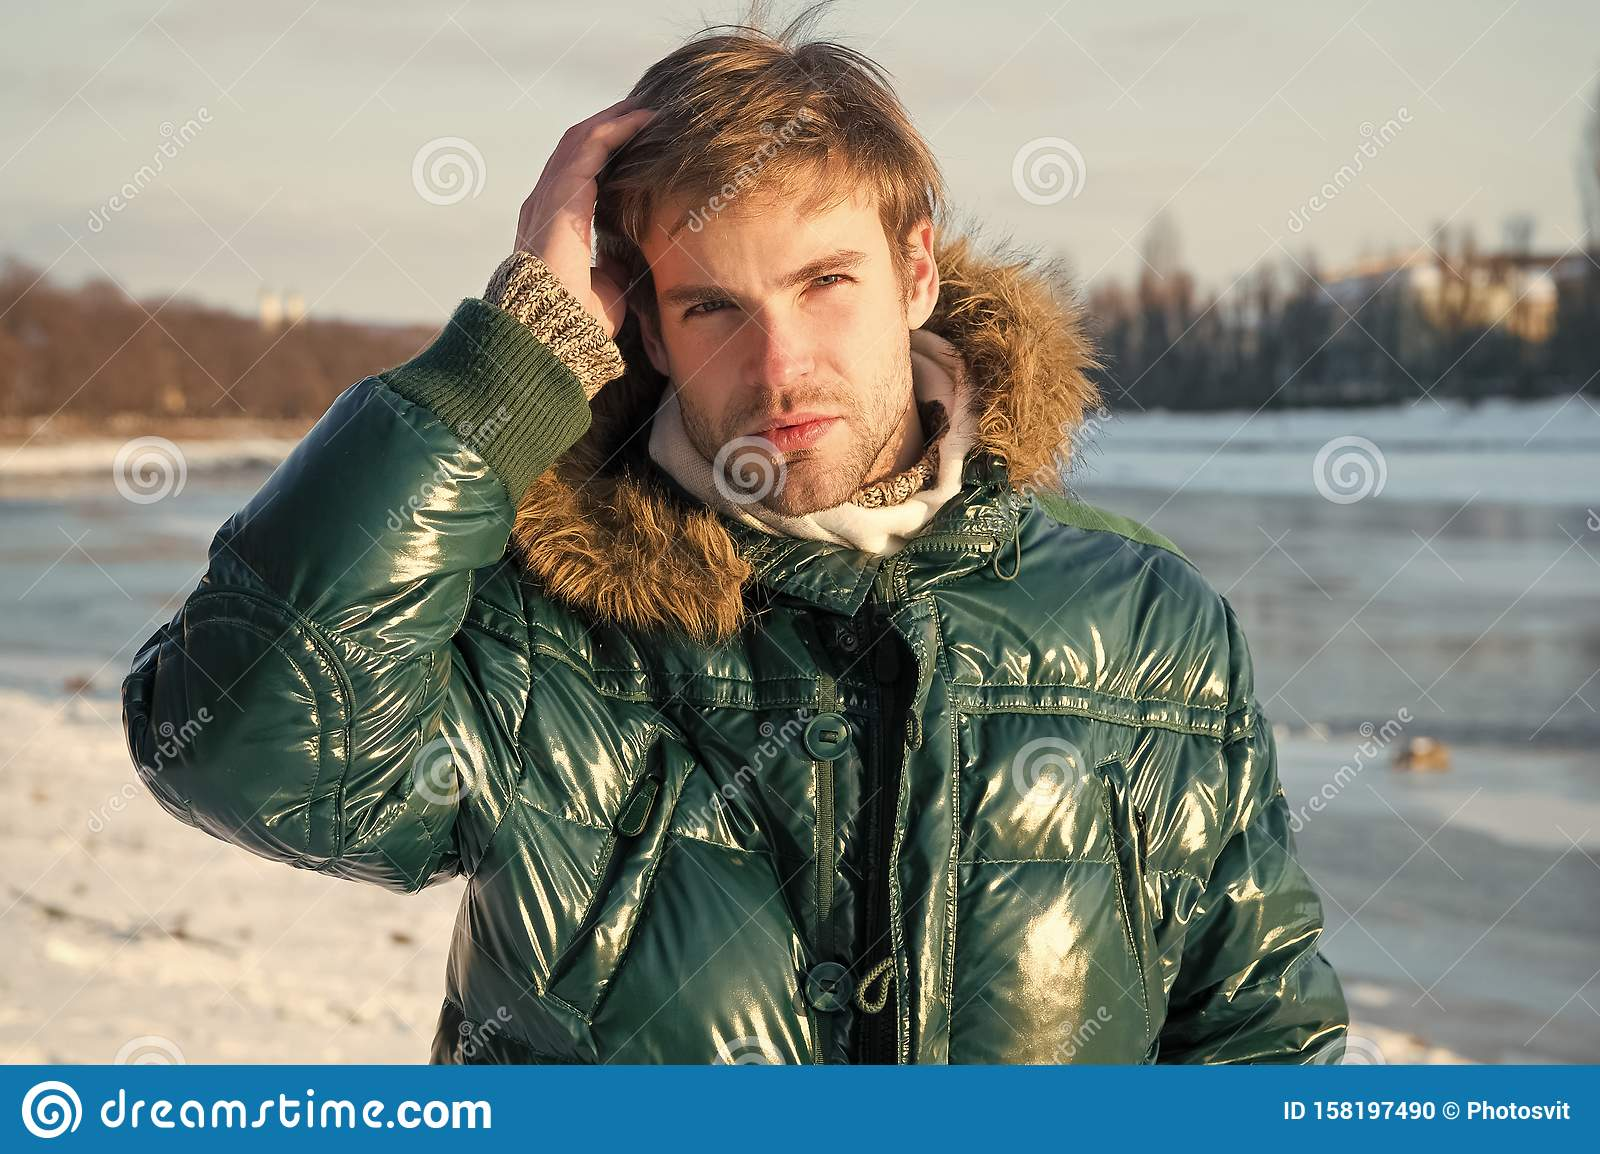 Happy winter holidays. Flu and cold. Winter fashion. Green warm coat. Warm clothes for cold season. Man traveling in